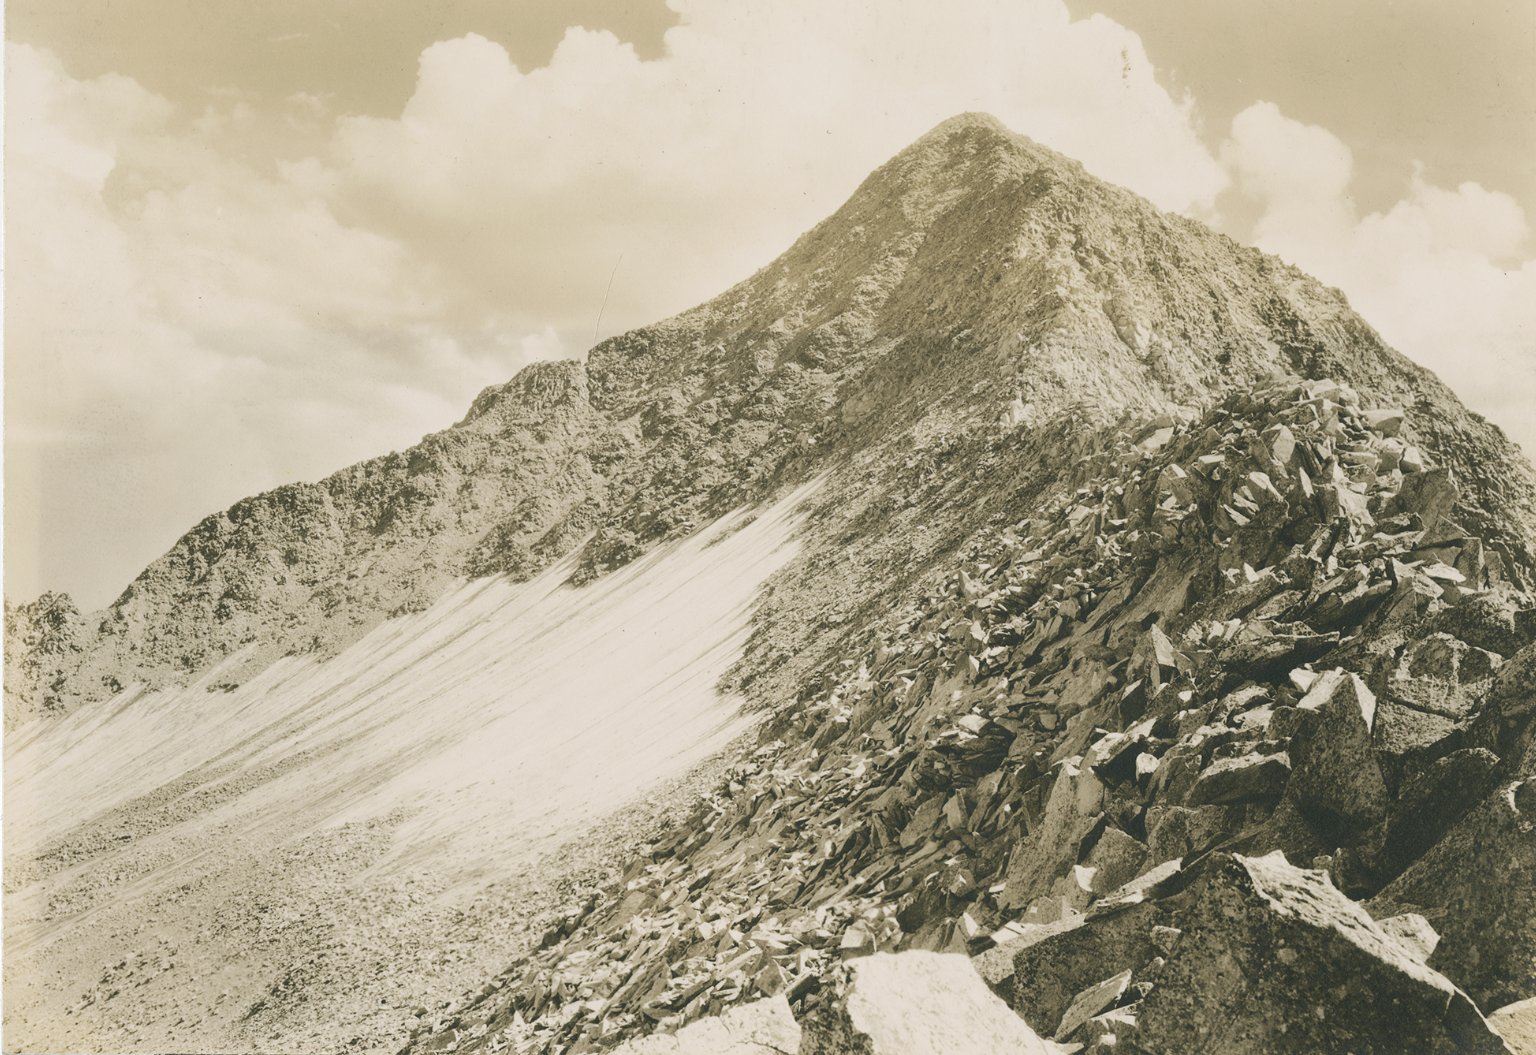 Untitled photo of mountain peak with snowfield and boulder fragments.